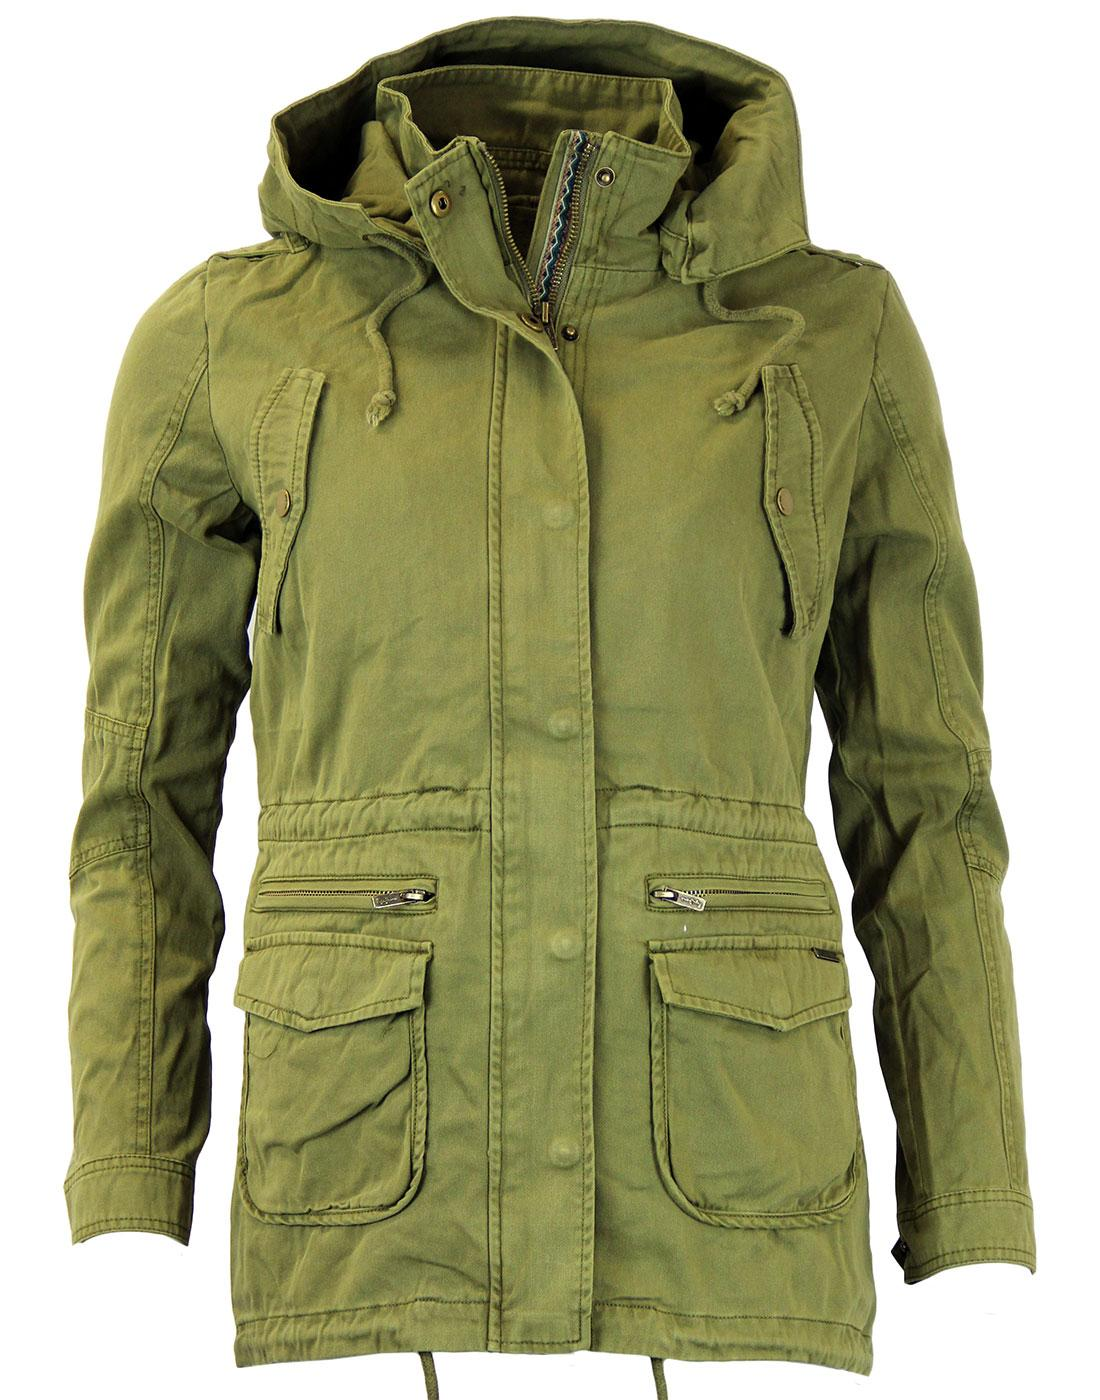 Glorie PEPE JEANS Retro Military Ikat Trim Parka